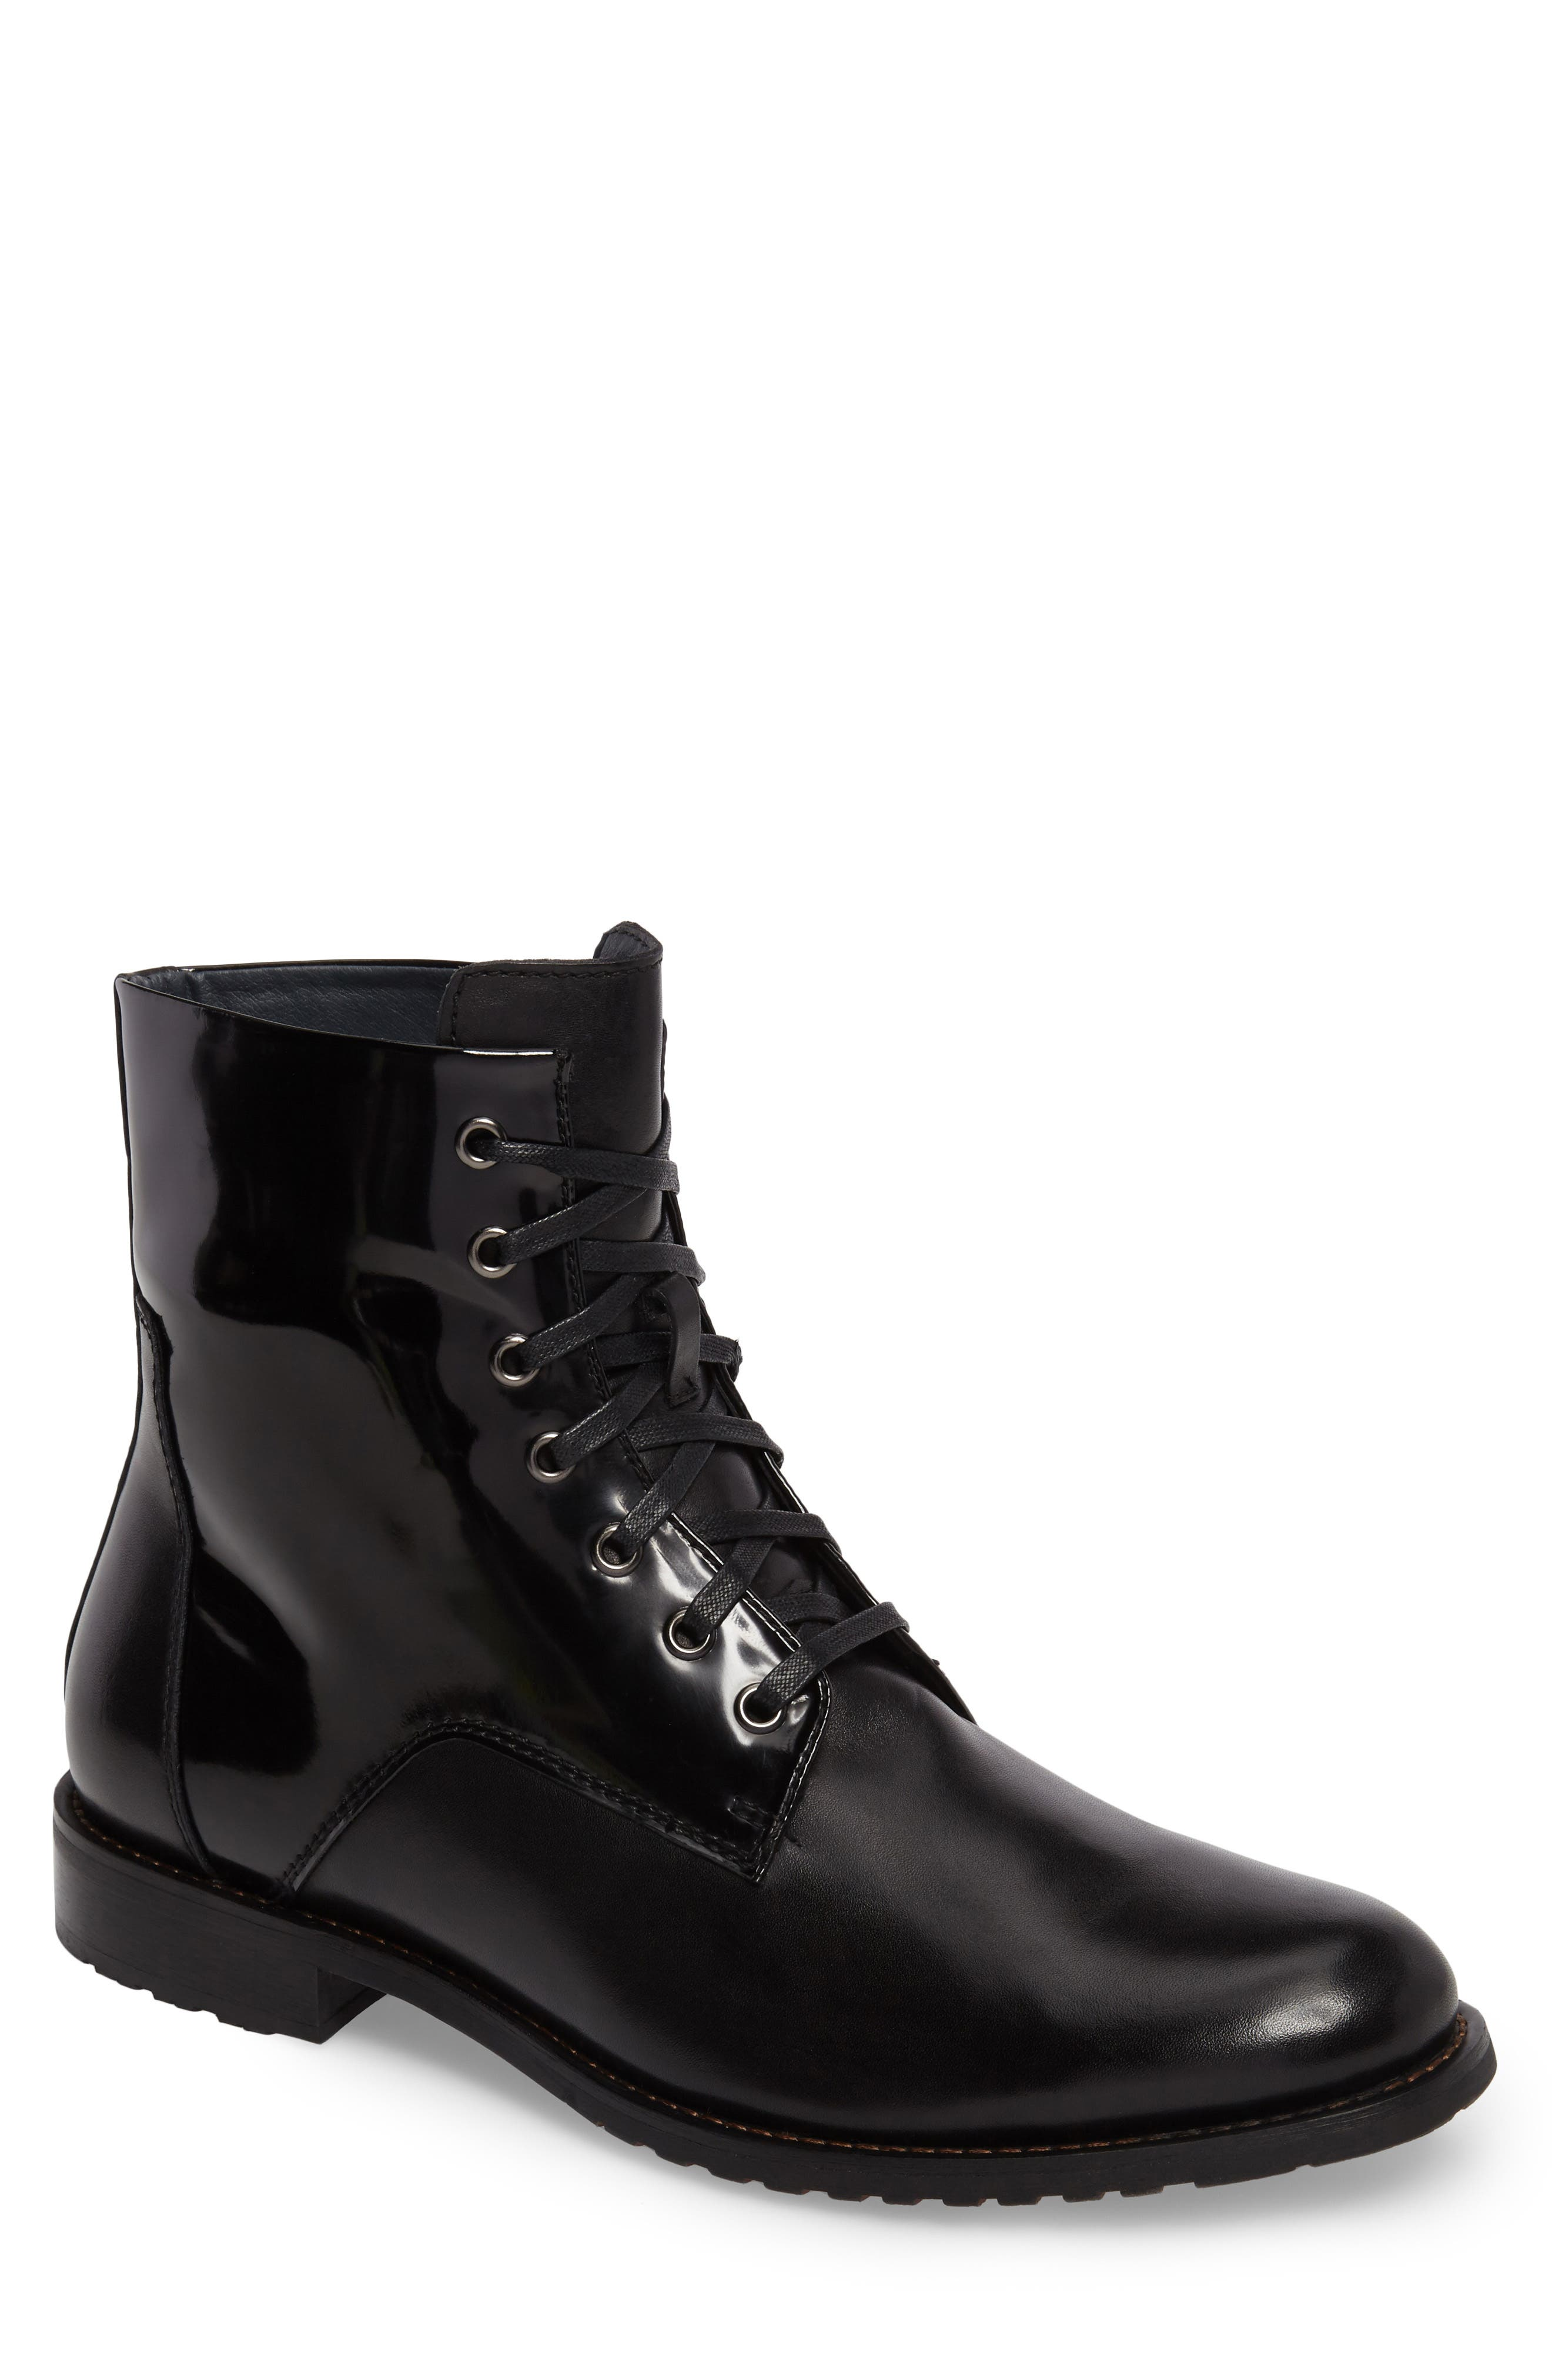 Athol Plain Toe Boot,                         Main,                         color, 001